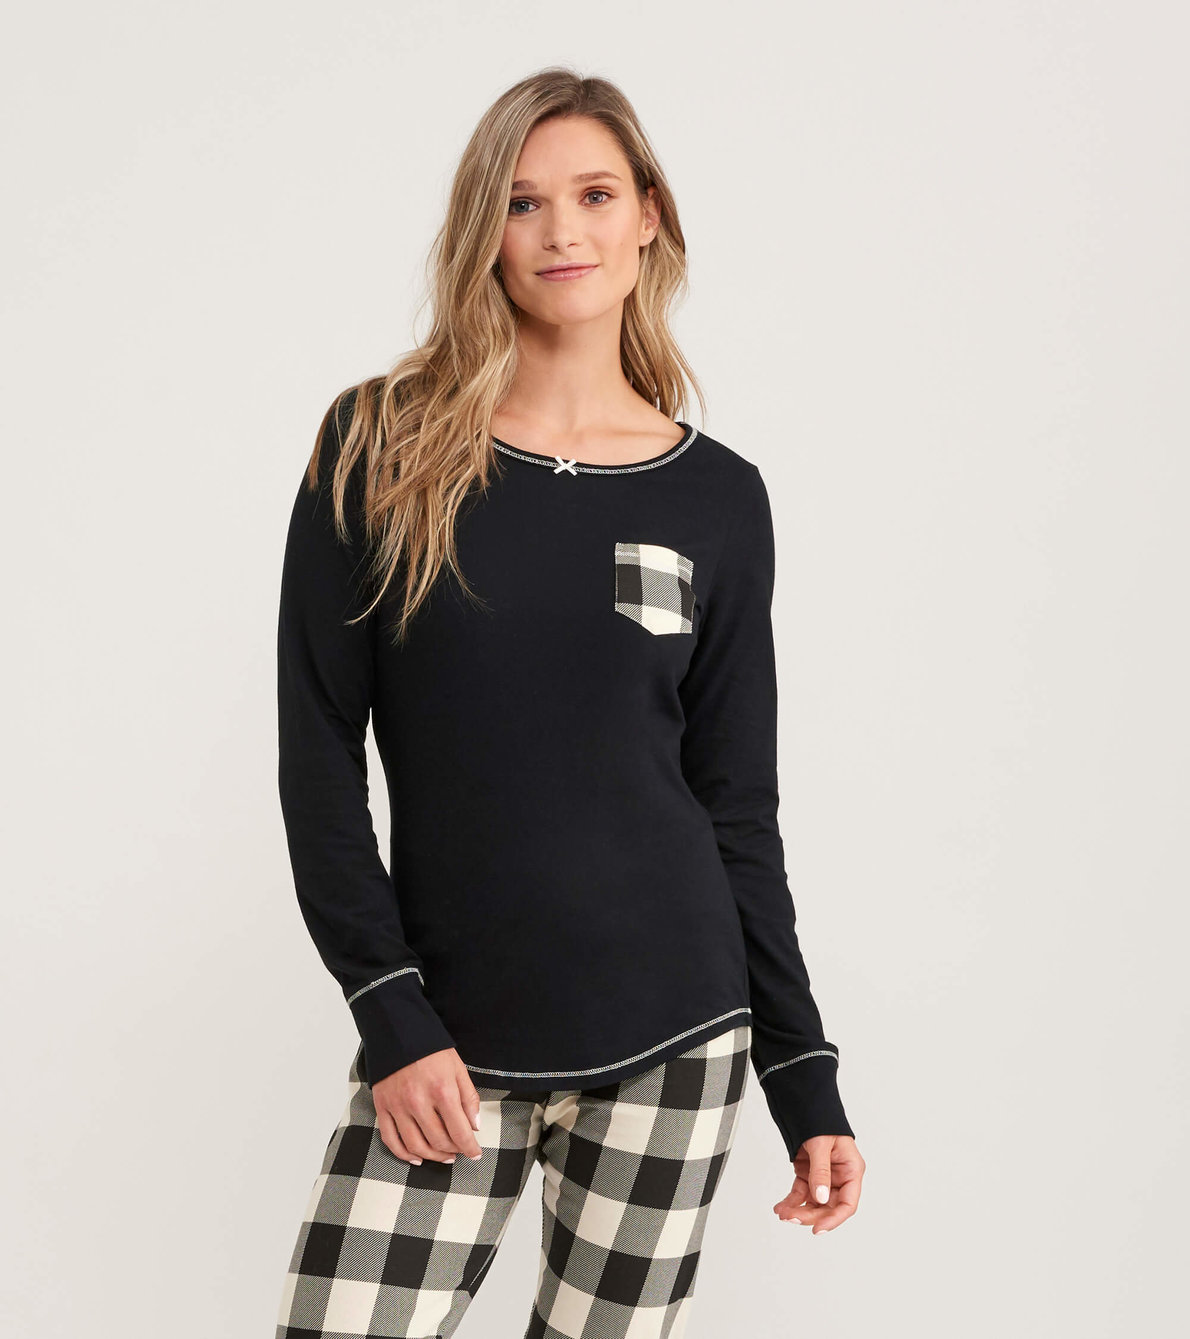 View larger image of Cream Plaid Women's Stretch Jersey Top